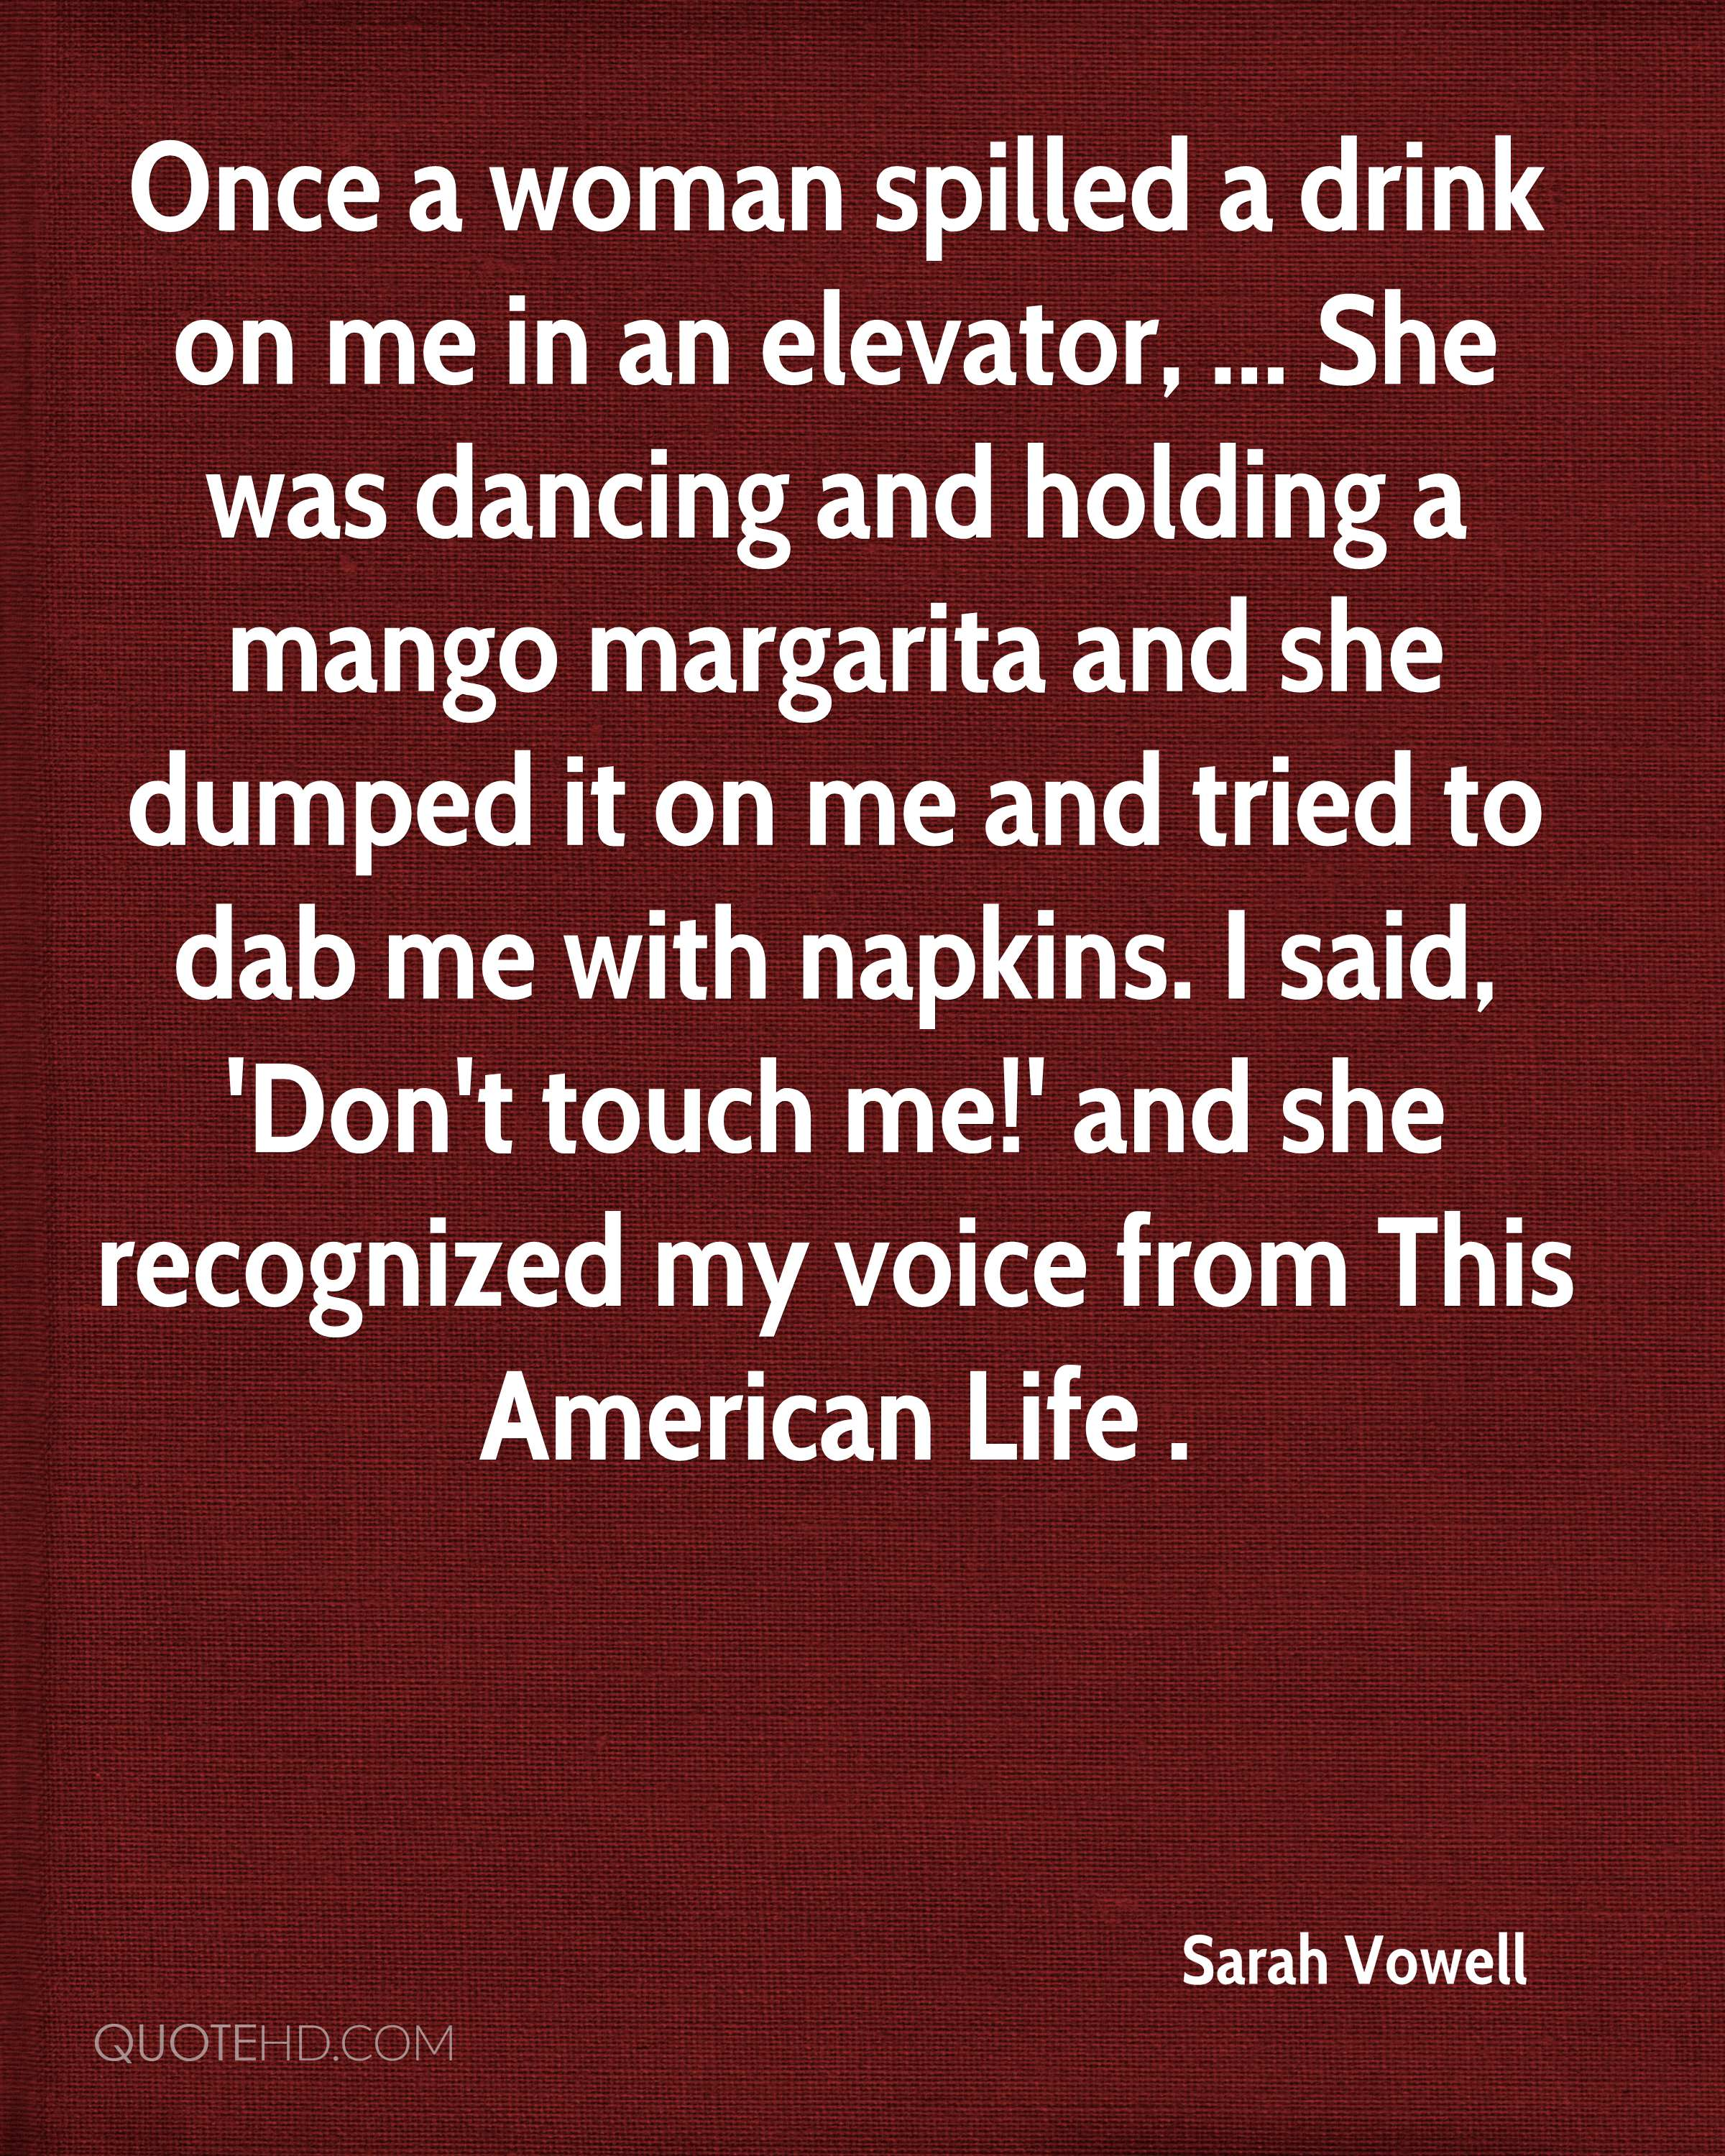 Once a woman spilled a drink on me in an elevator, ... She was dancing and holding a mango margarita and she dumped it on me and tried to dab me with napkins. I said, 'Don't touch me!' and she recognized my voice from This American Life .